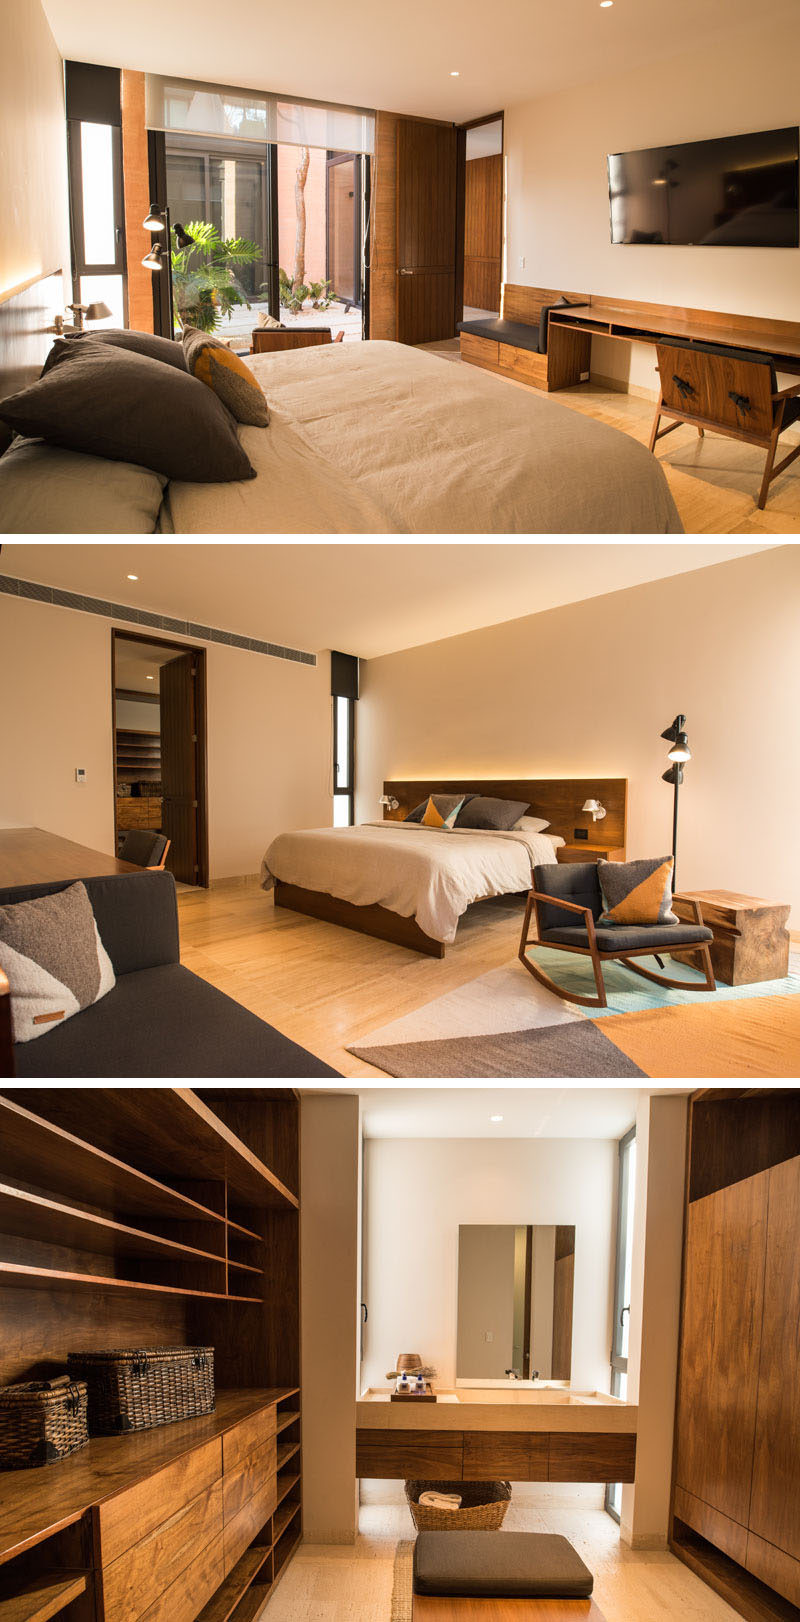 This simple bedroom features a built-in desk/bench and an ensuite bathroom. The bedroom looks out onto a small courtyard that provides natural light to the room.